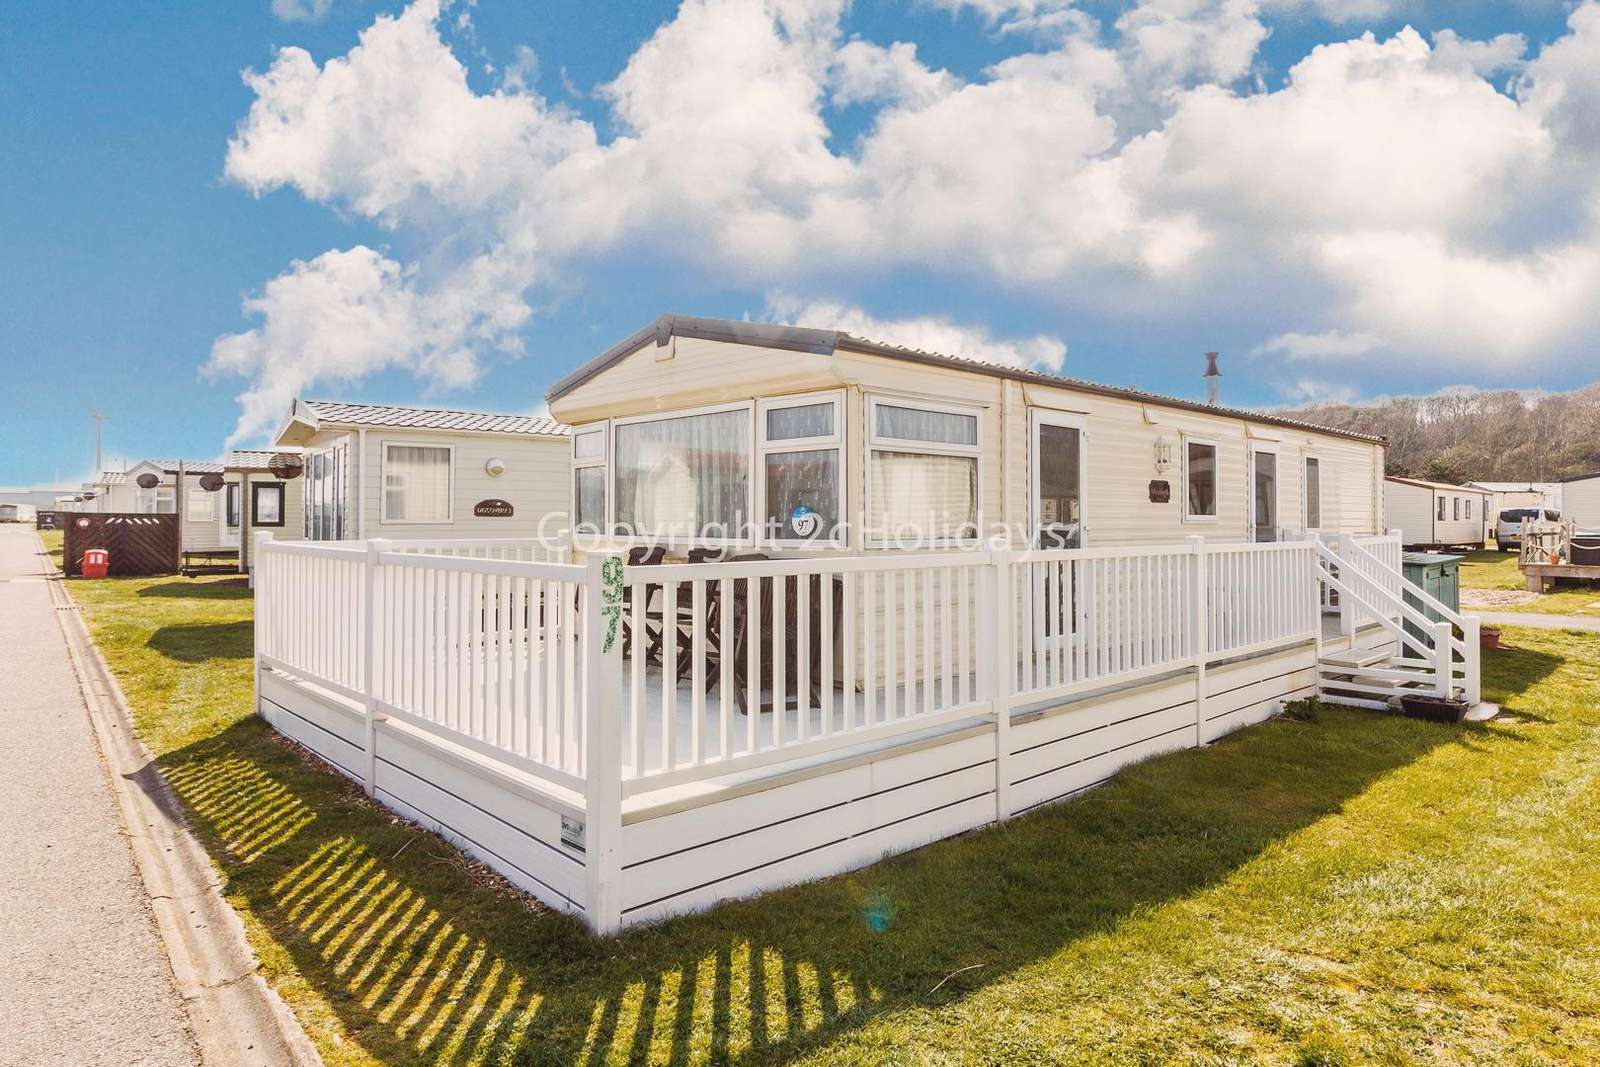 Perfect for seaside break with the beach only a 5 minute walk away! - property